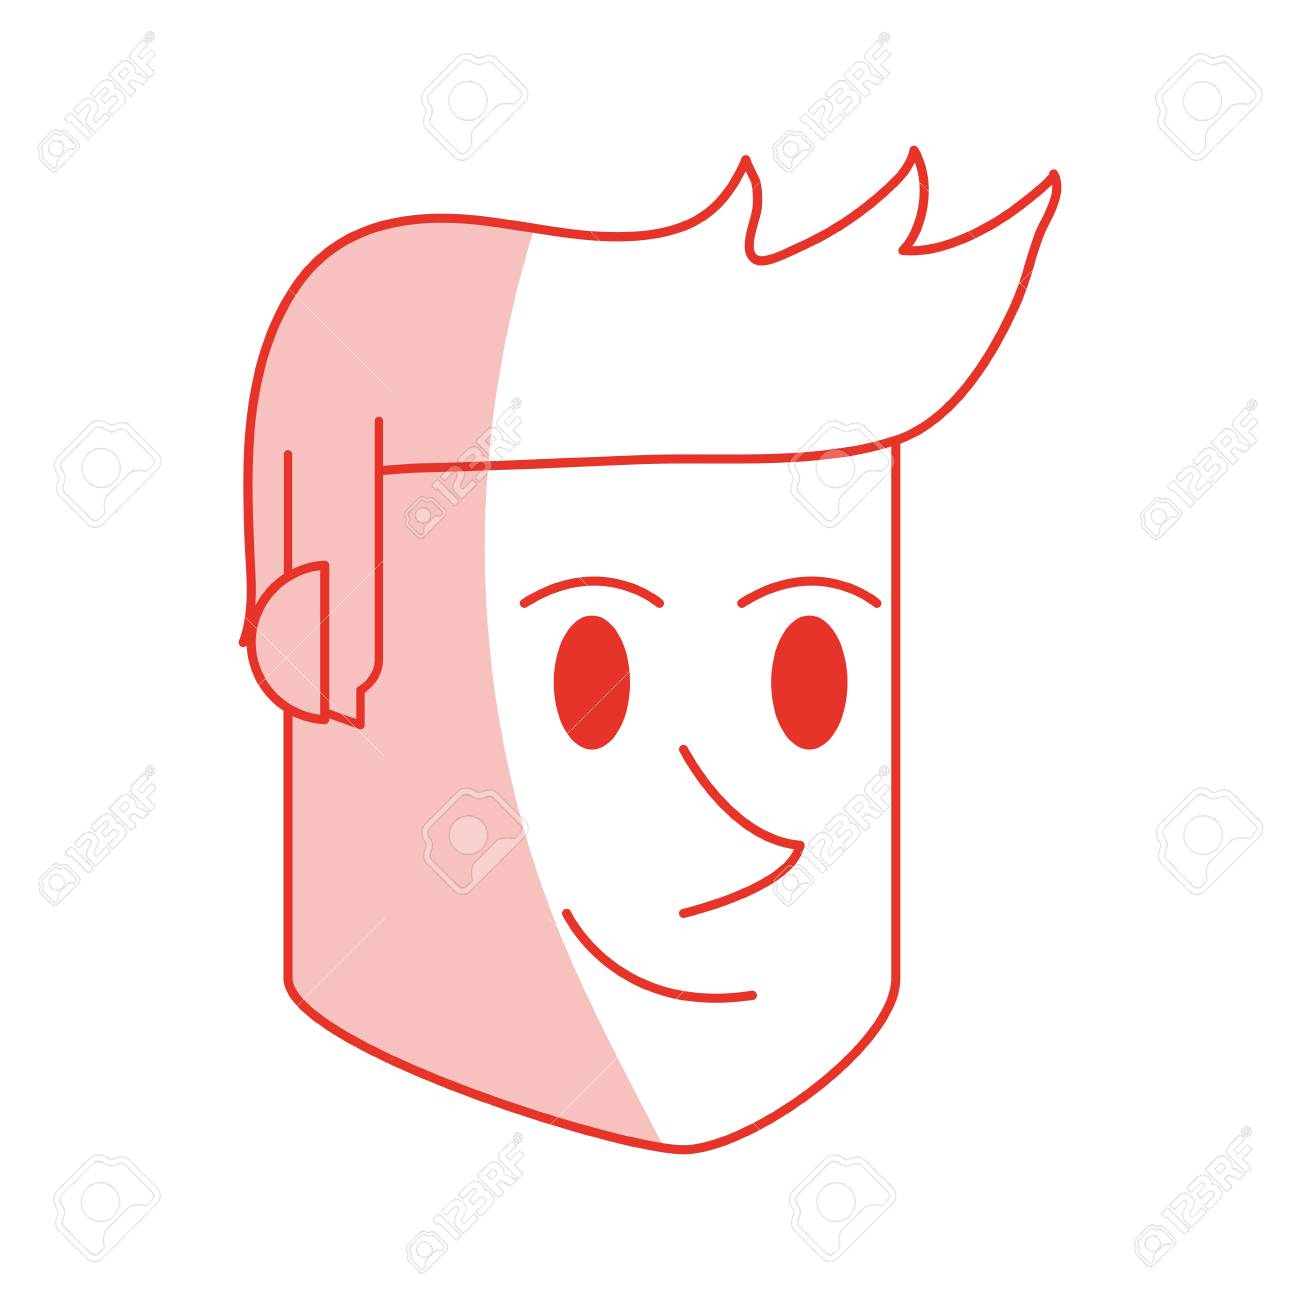 Red Shading Silhouette Cartoon Side View Face Guy With Hairstyle Vector Illustration Royalty Free Cliparts Vetores E Ilustracoes Stock Image 77701485